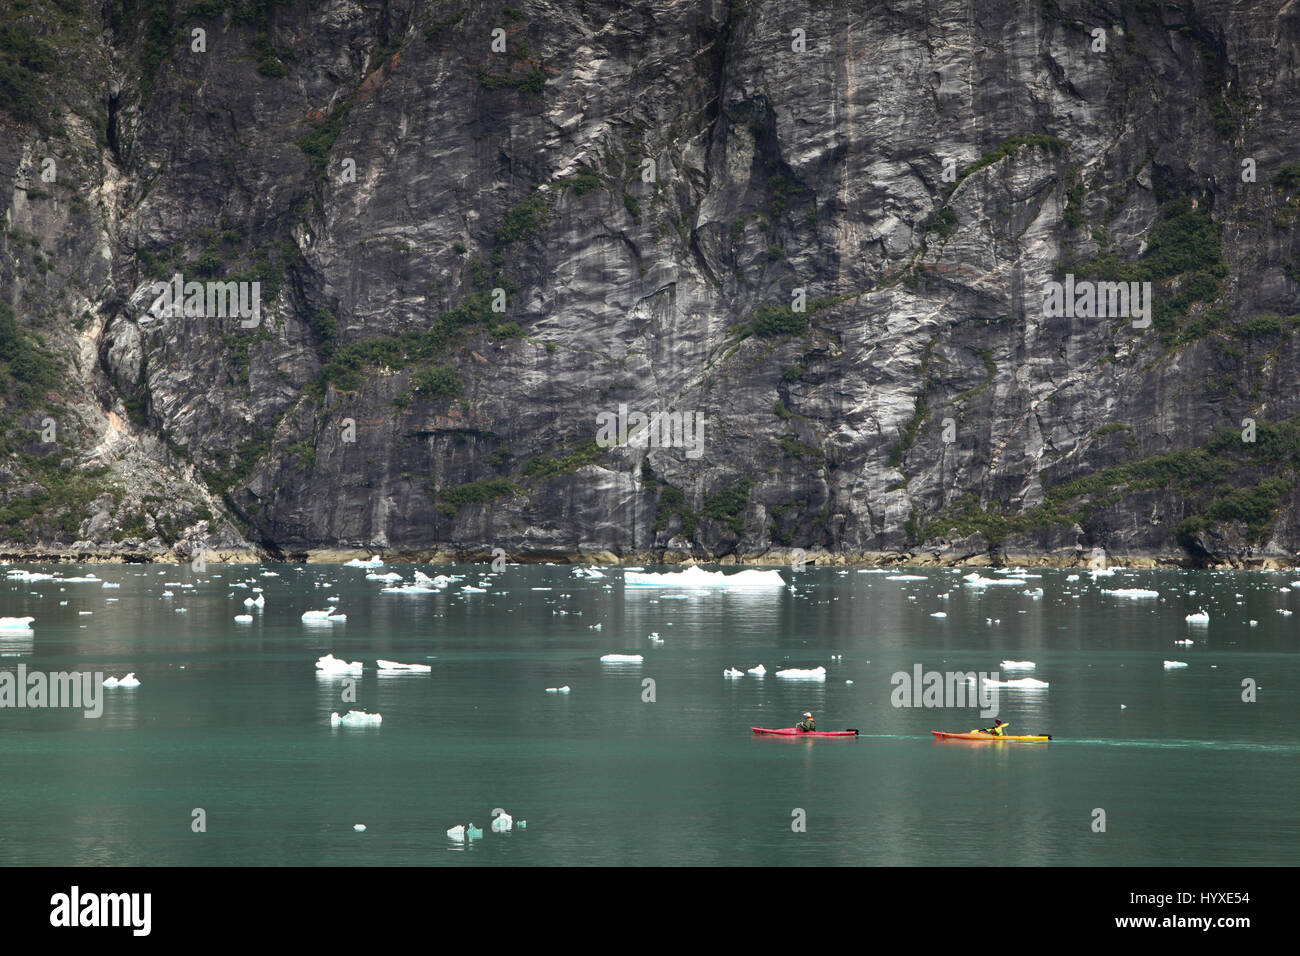 Near a shear rockface, travelers in kayaks navigate water around icebergs. - Stock Image